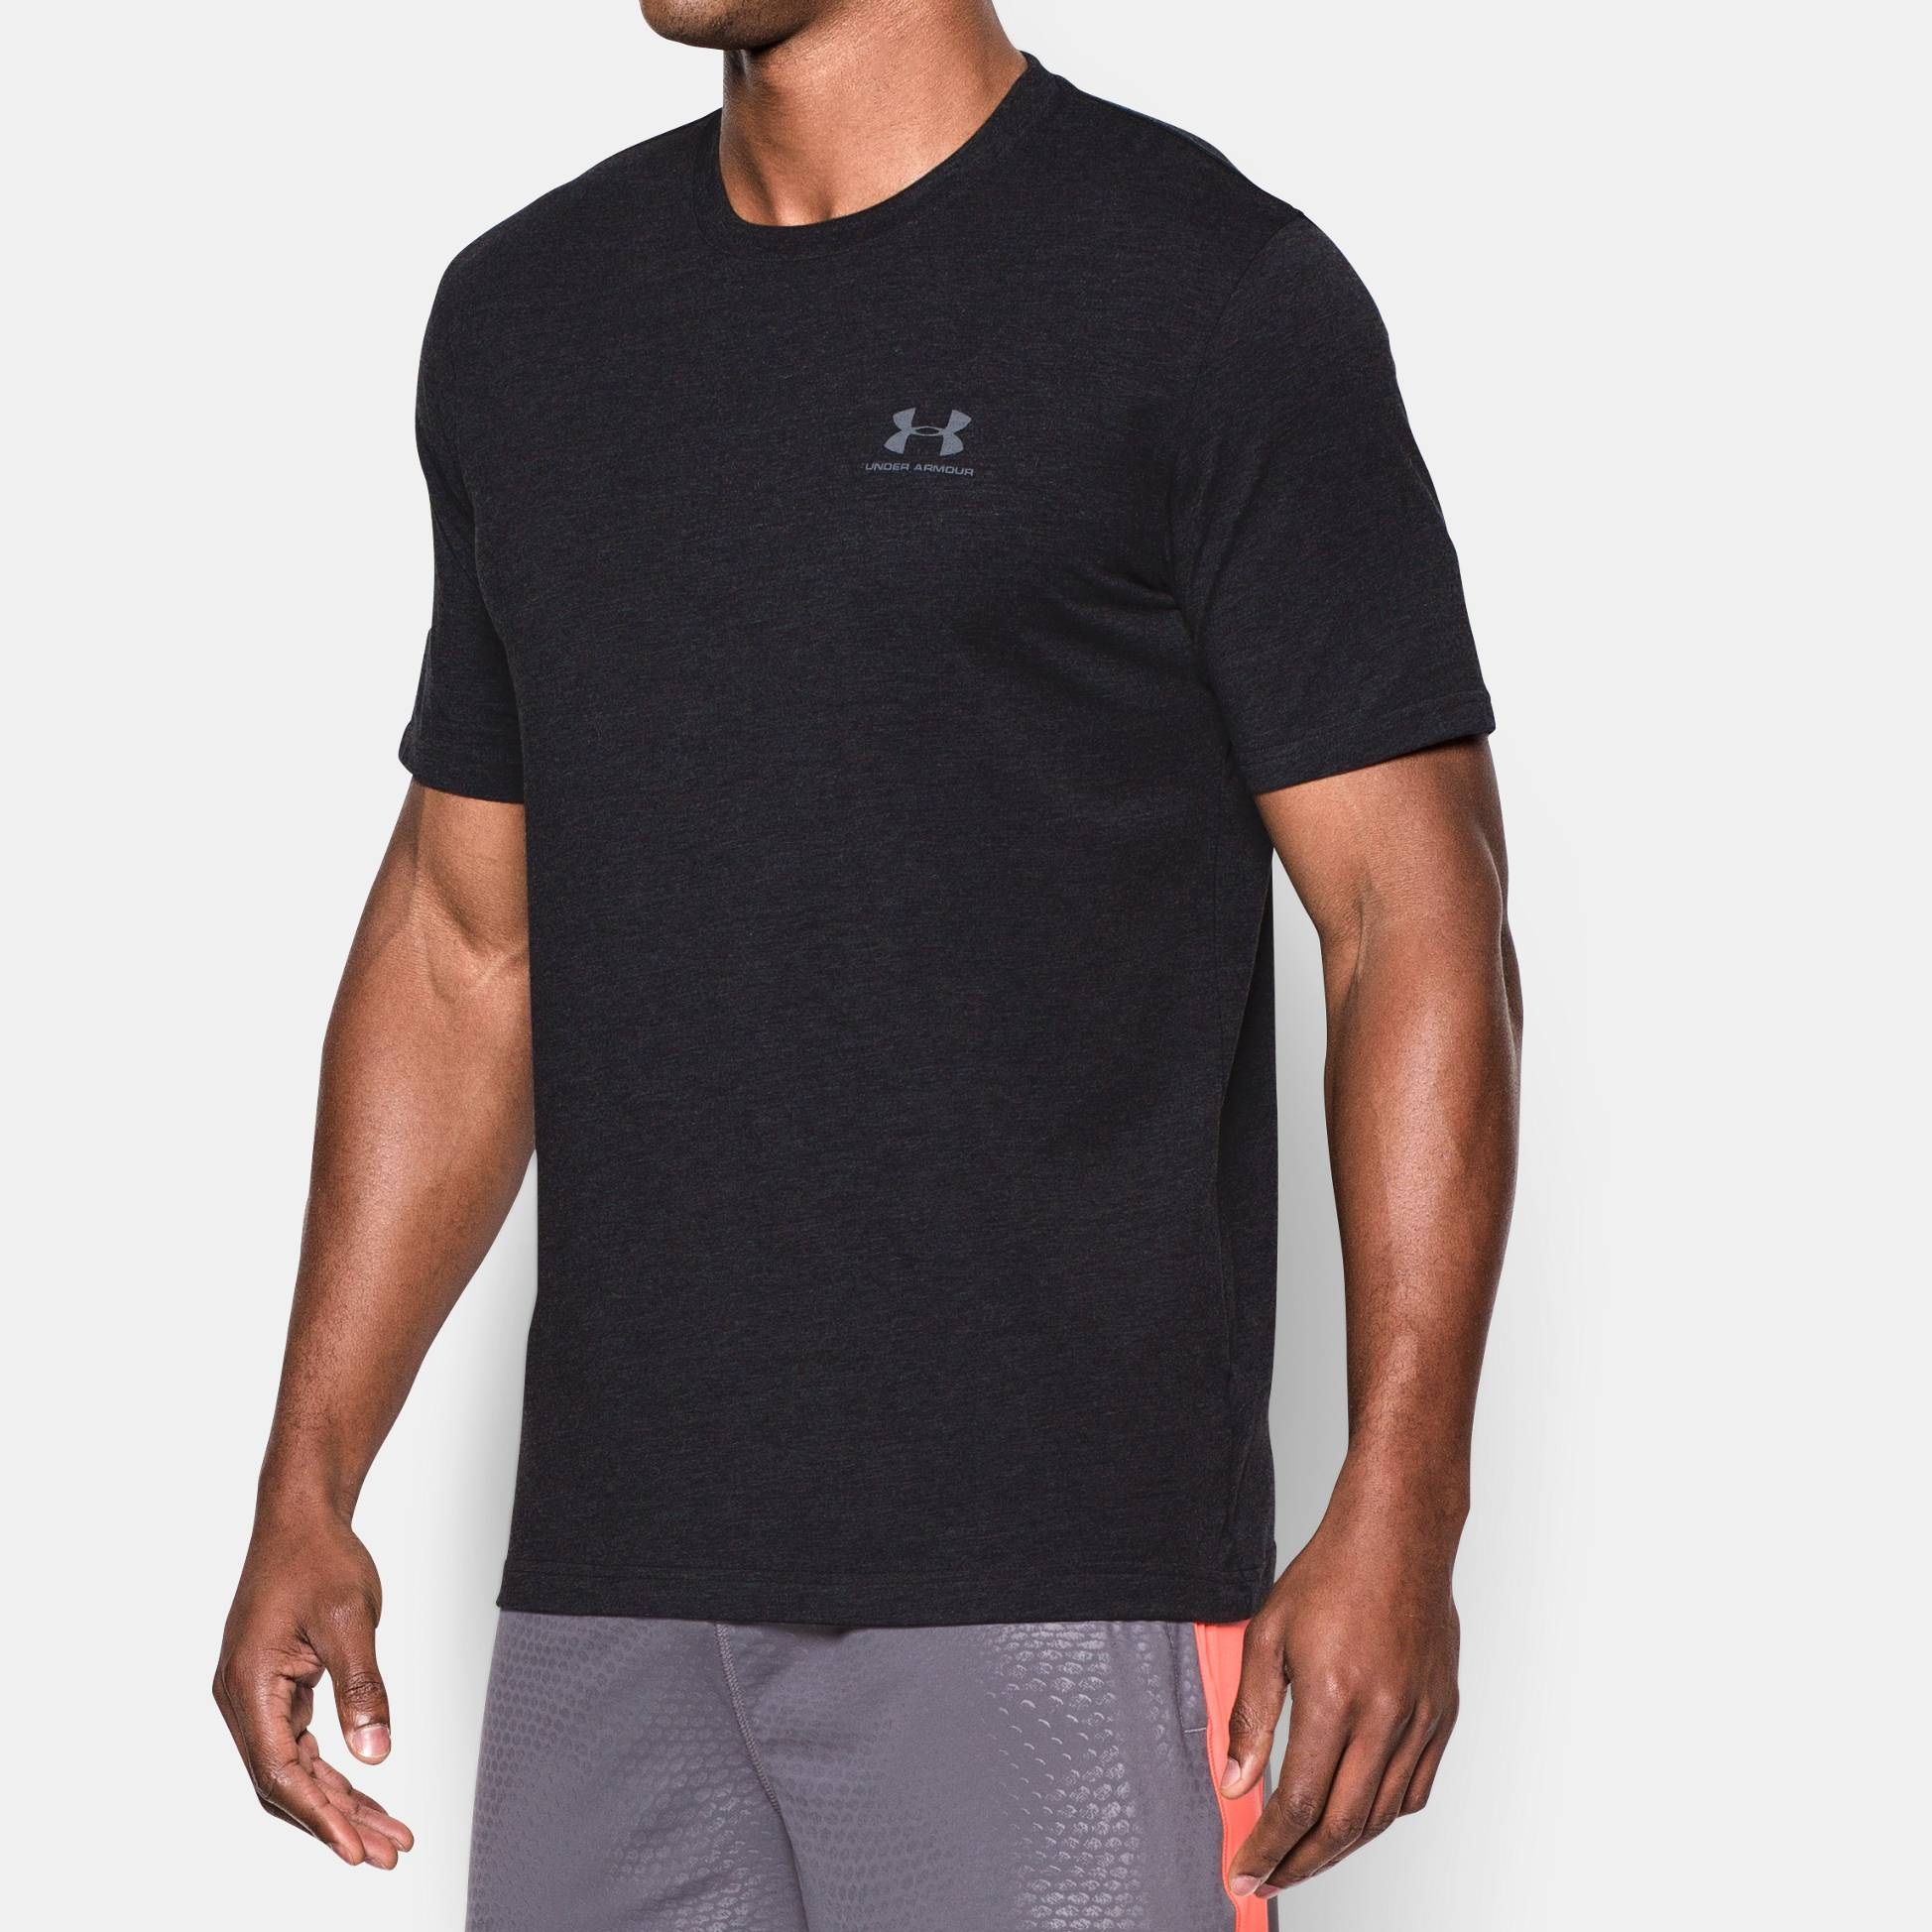 Clothing under armour cc sportsyle shirt fitness for Under armour i will shirt